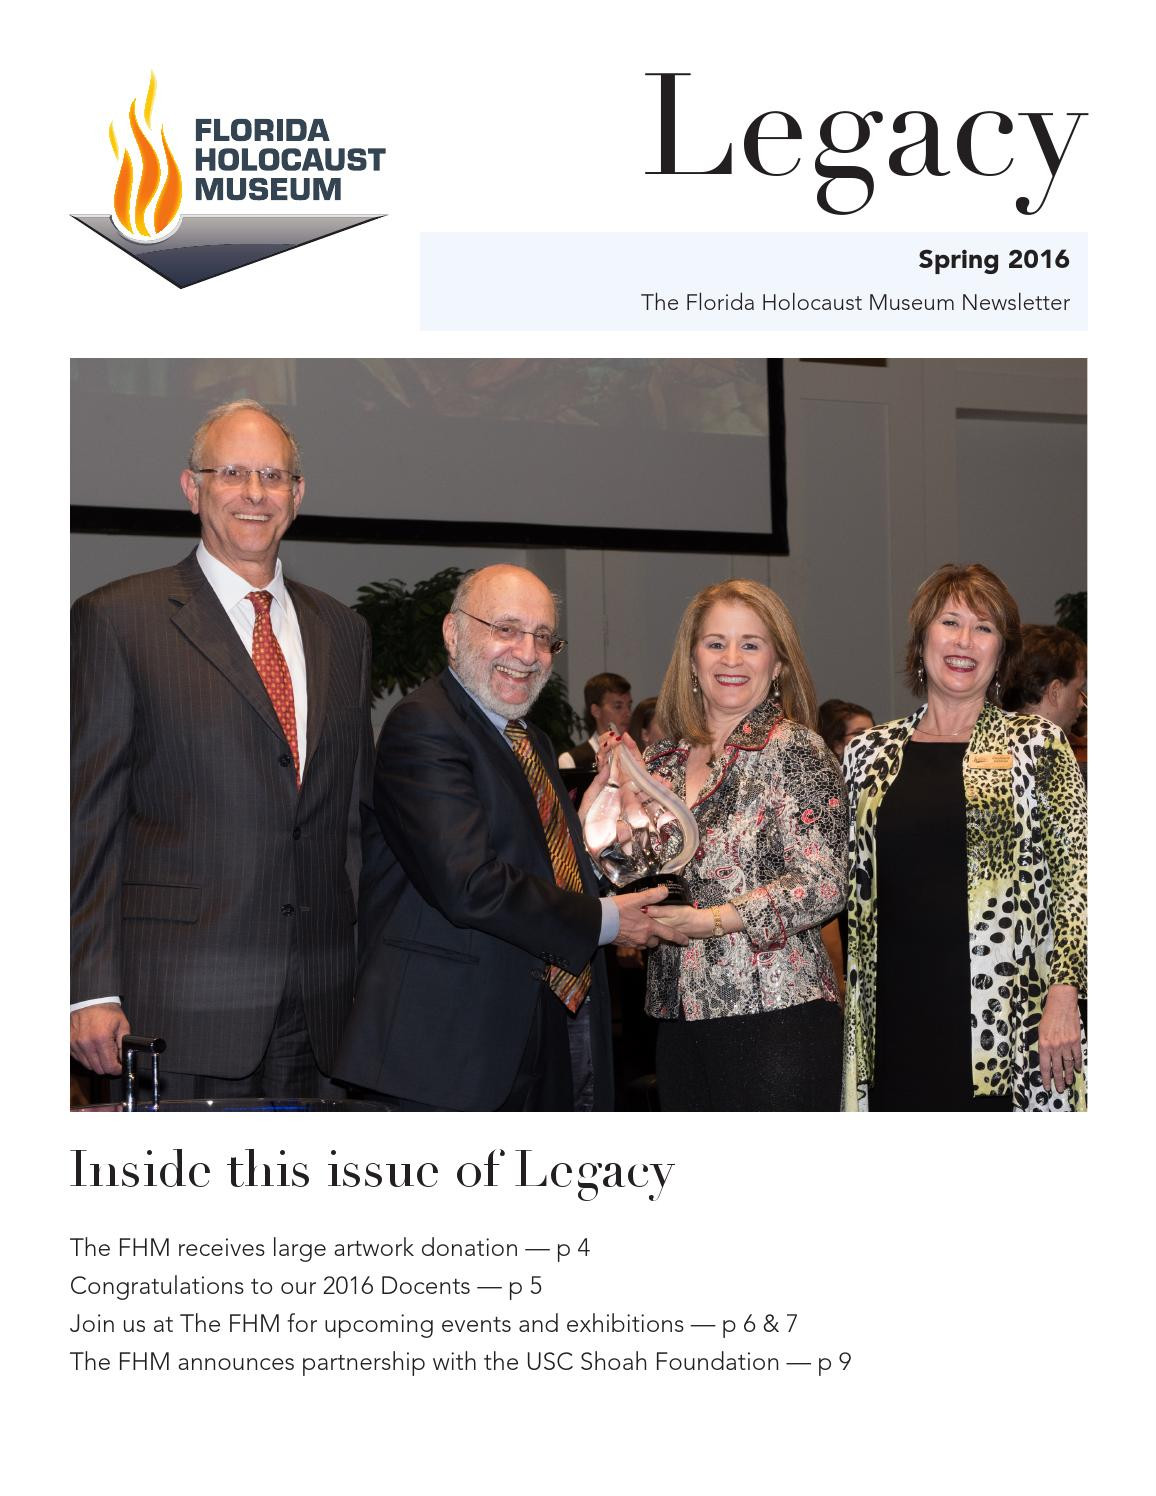 Spring 2016 Newsletter by The Florida Holocaust Museum - issuu